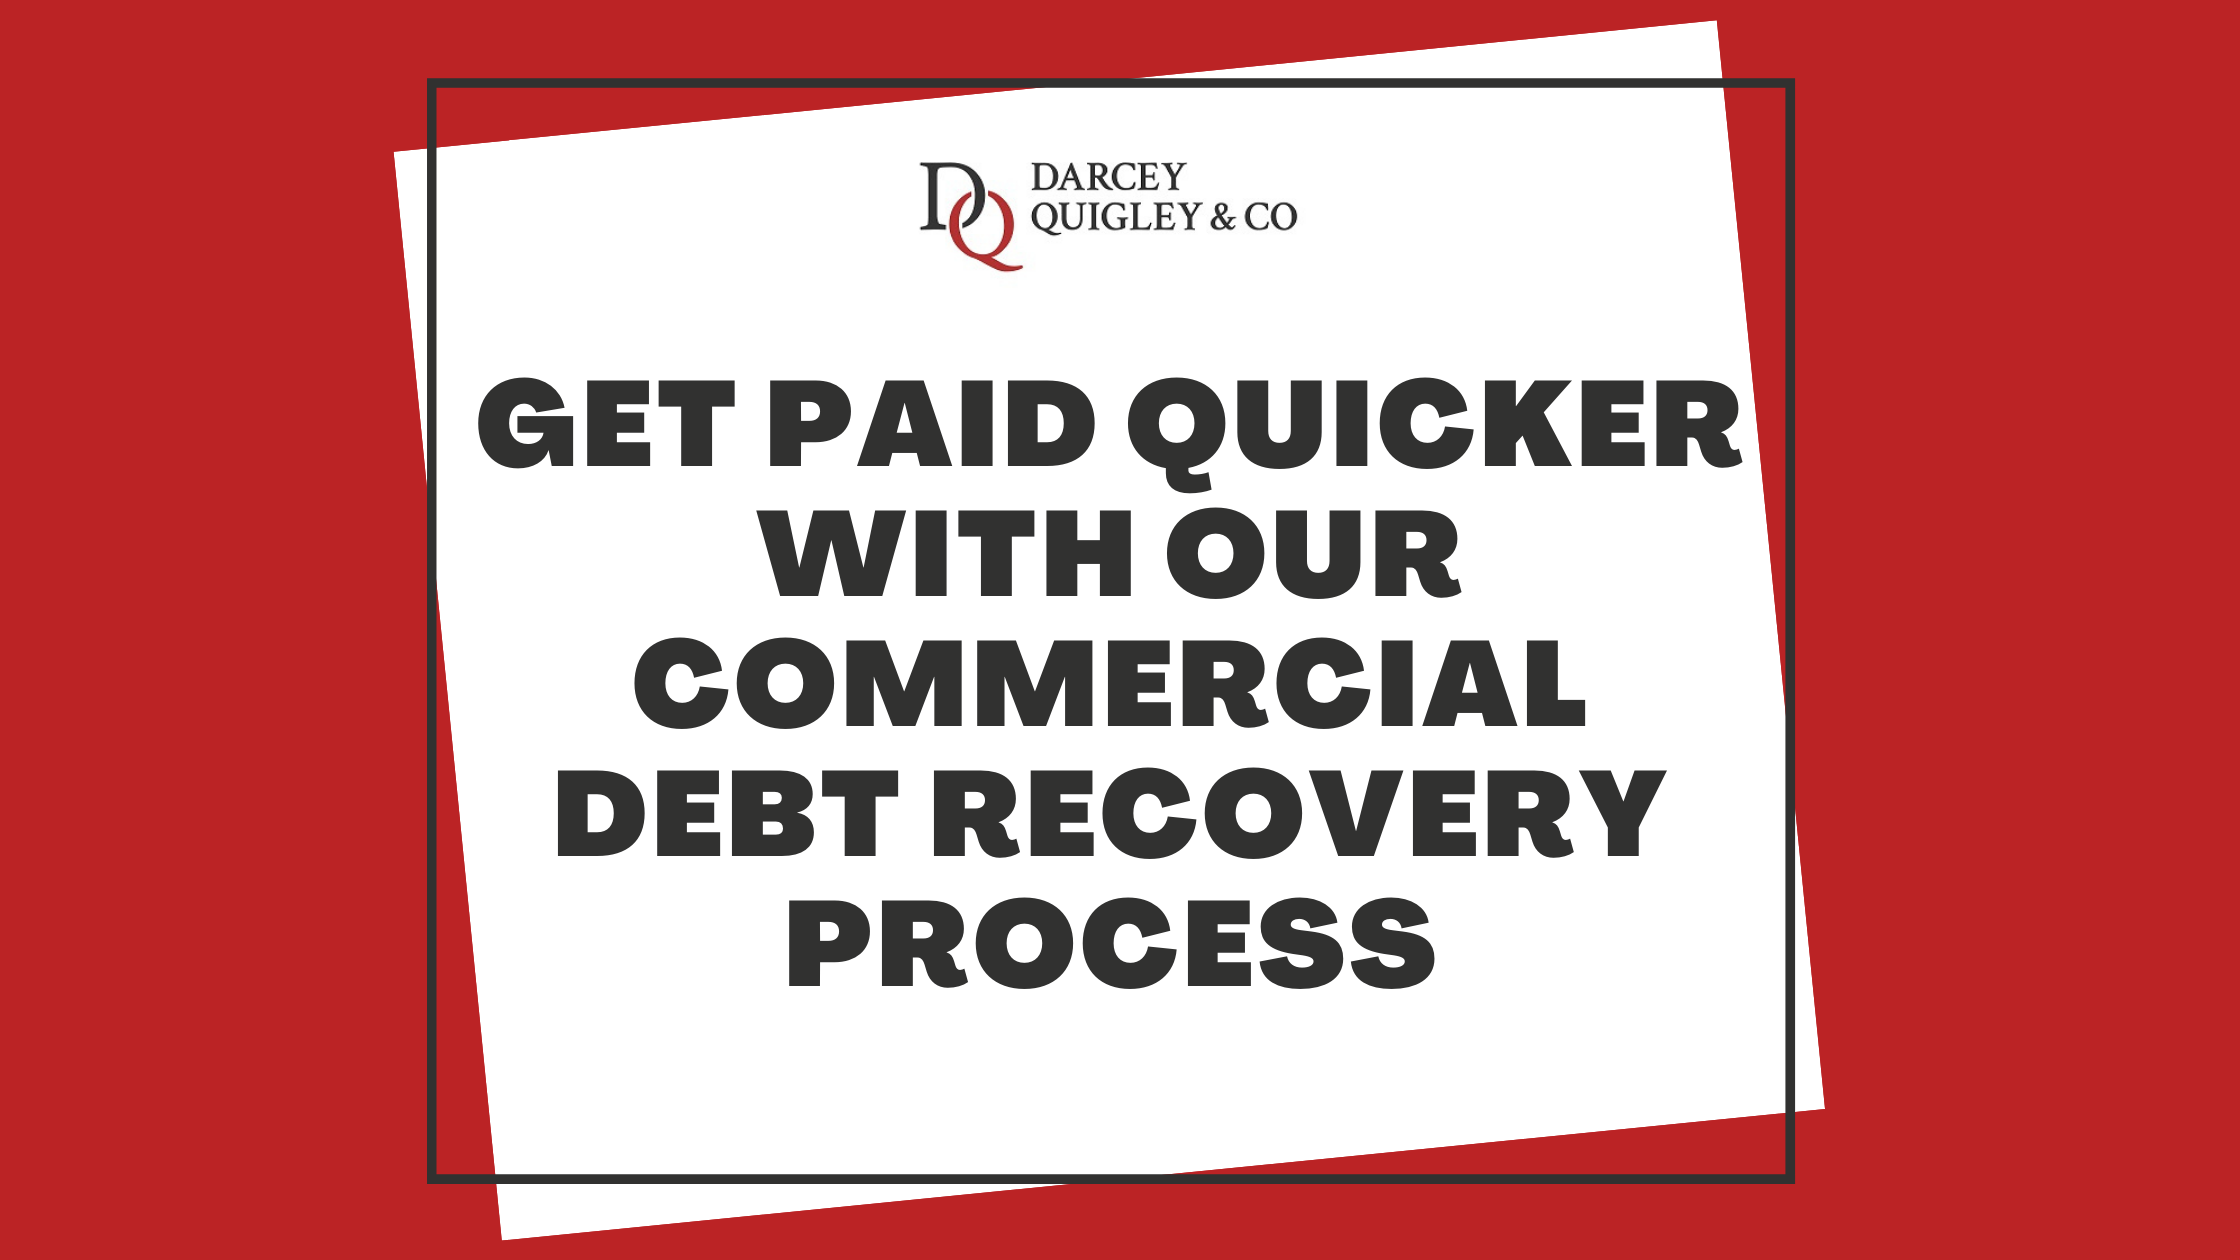 Get Paid Quicker With Darcey Quigley's Commercial Debt Recovery Process